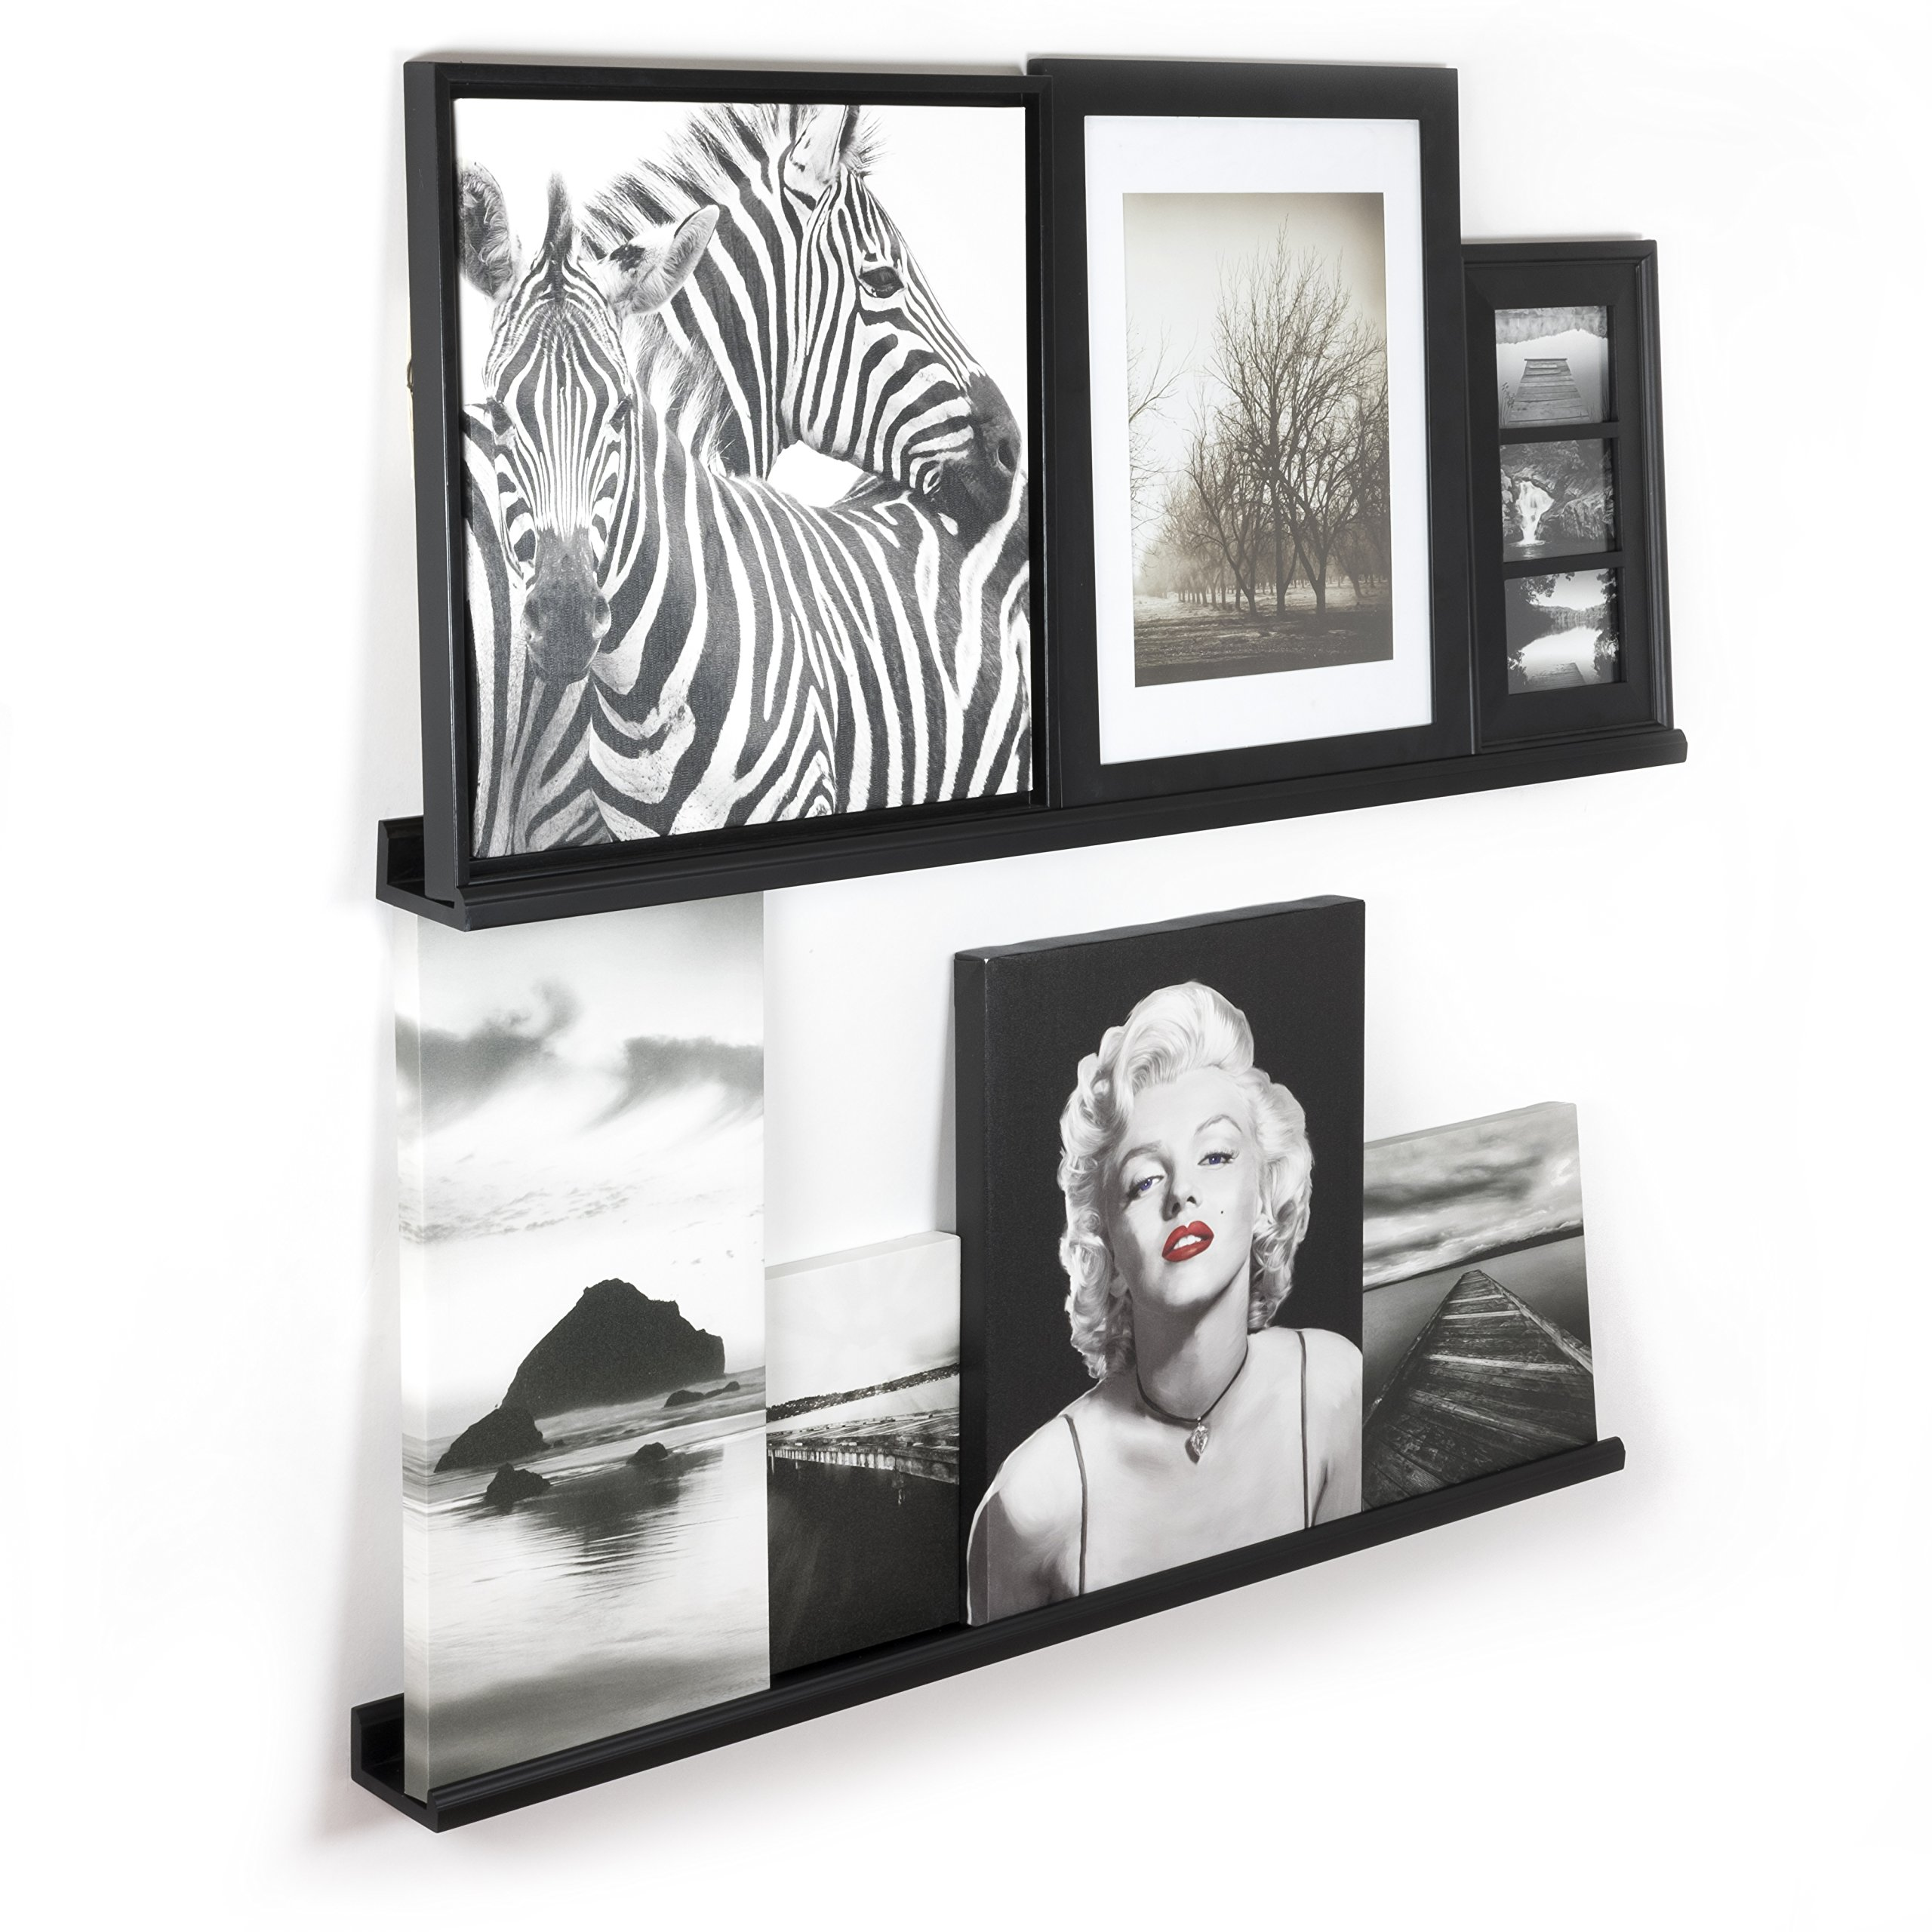 Wallniture Contemporary Floating Wall Shelf Ledge Picture Book Display Black 46 Inch Set of 2 by Wallniture (Image #2)